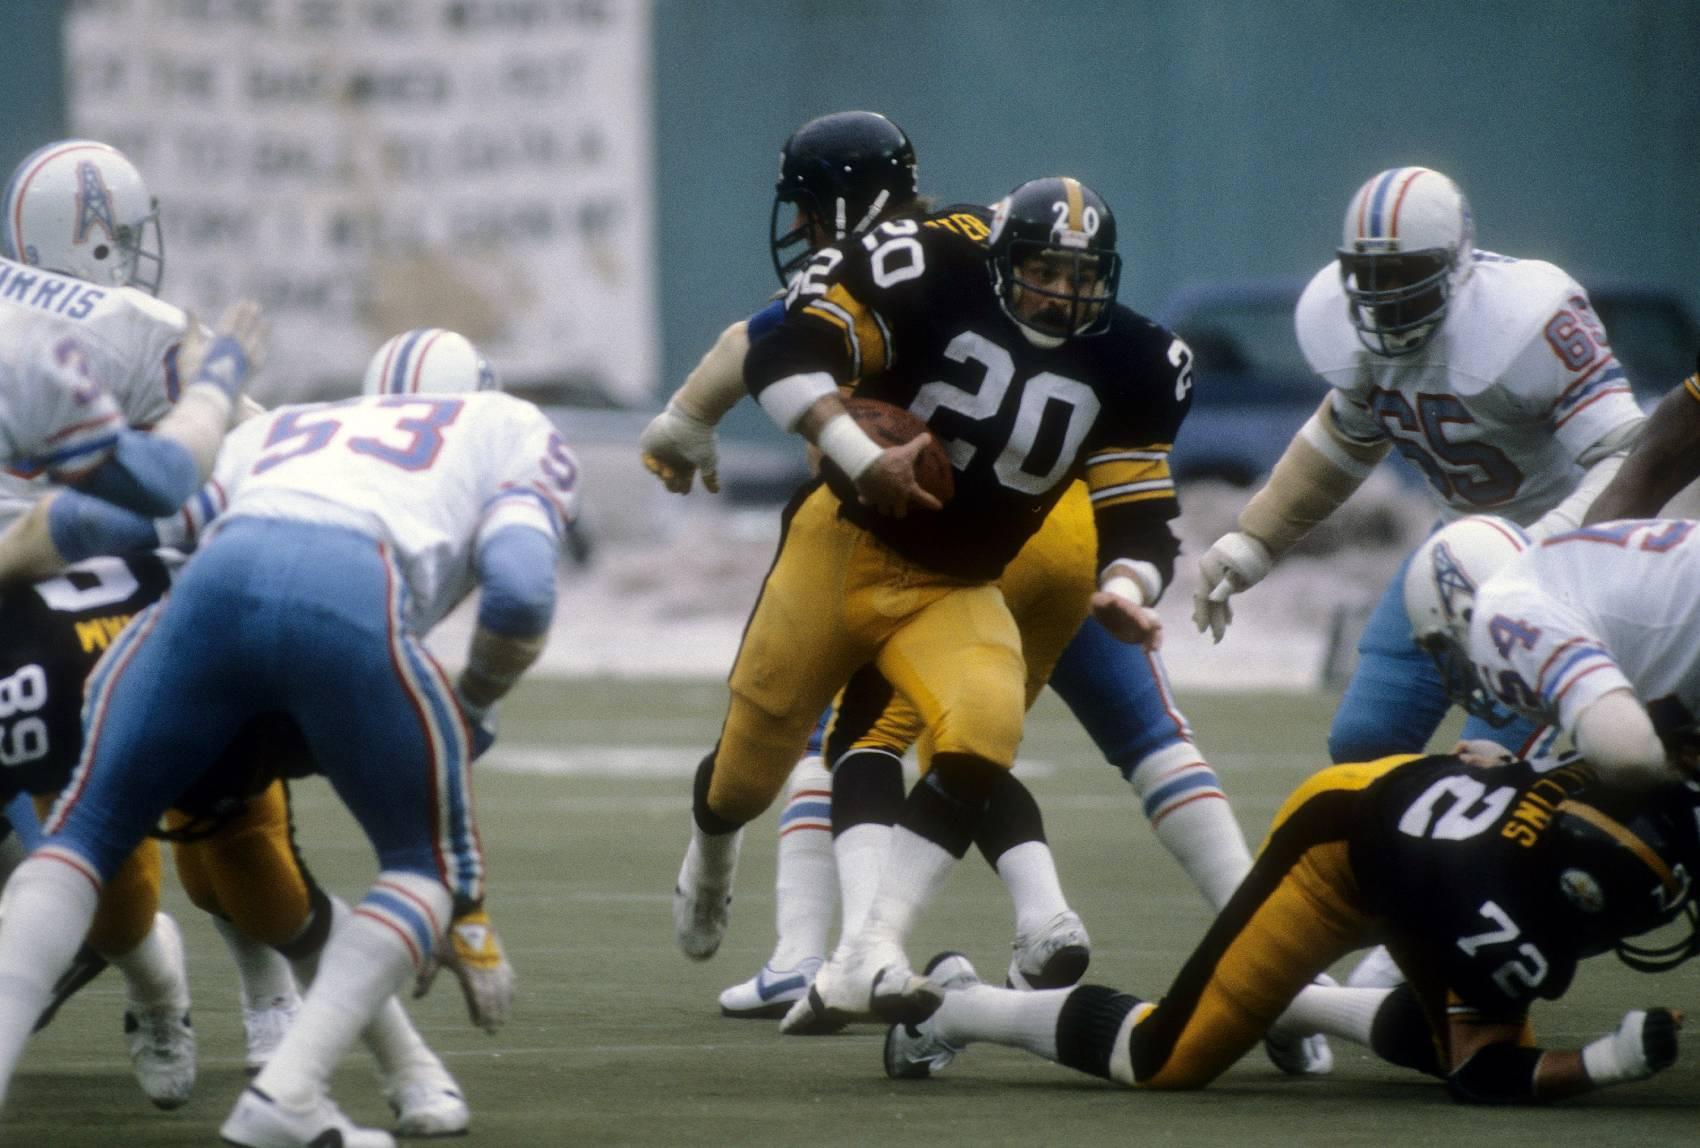 Longtime Steelers running back Rockey Bleier returned to the NFL after he suffered a grenade-related injury.